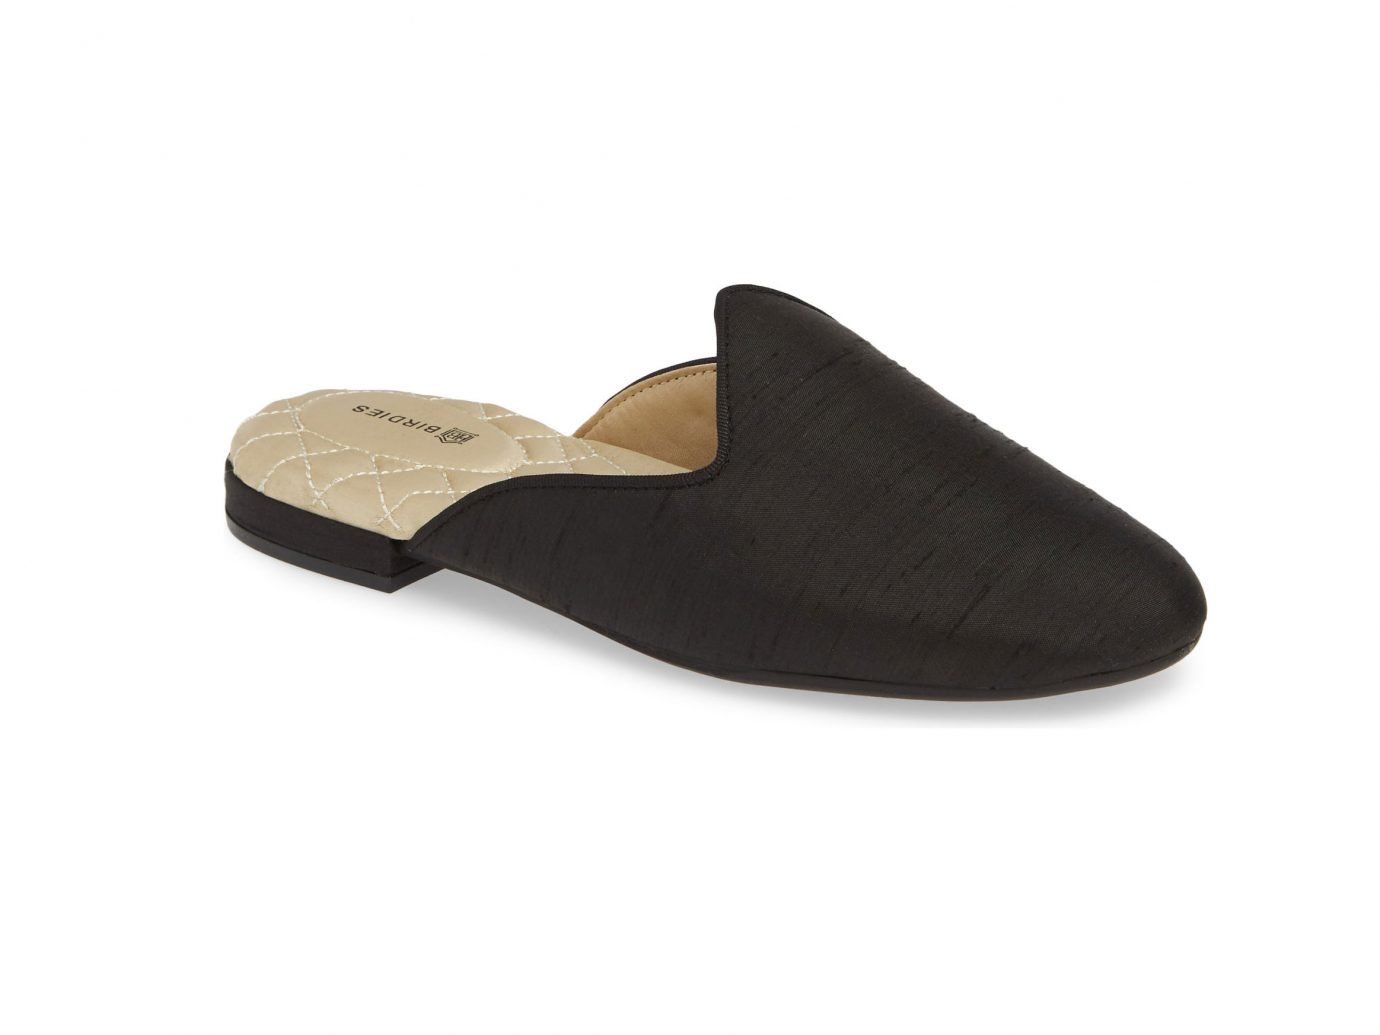 Slip-on shoes Birdies Raven Slipper